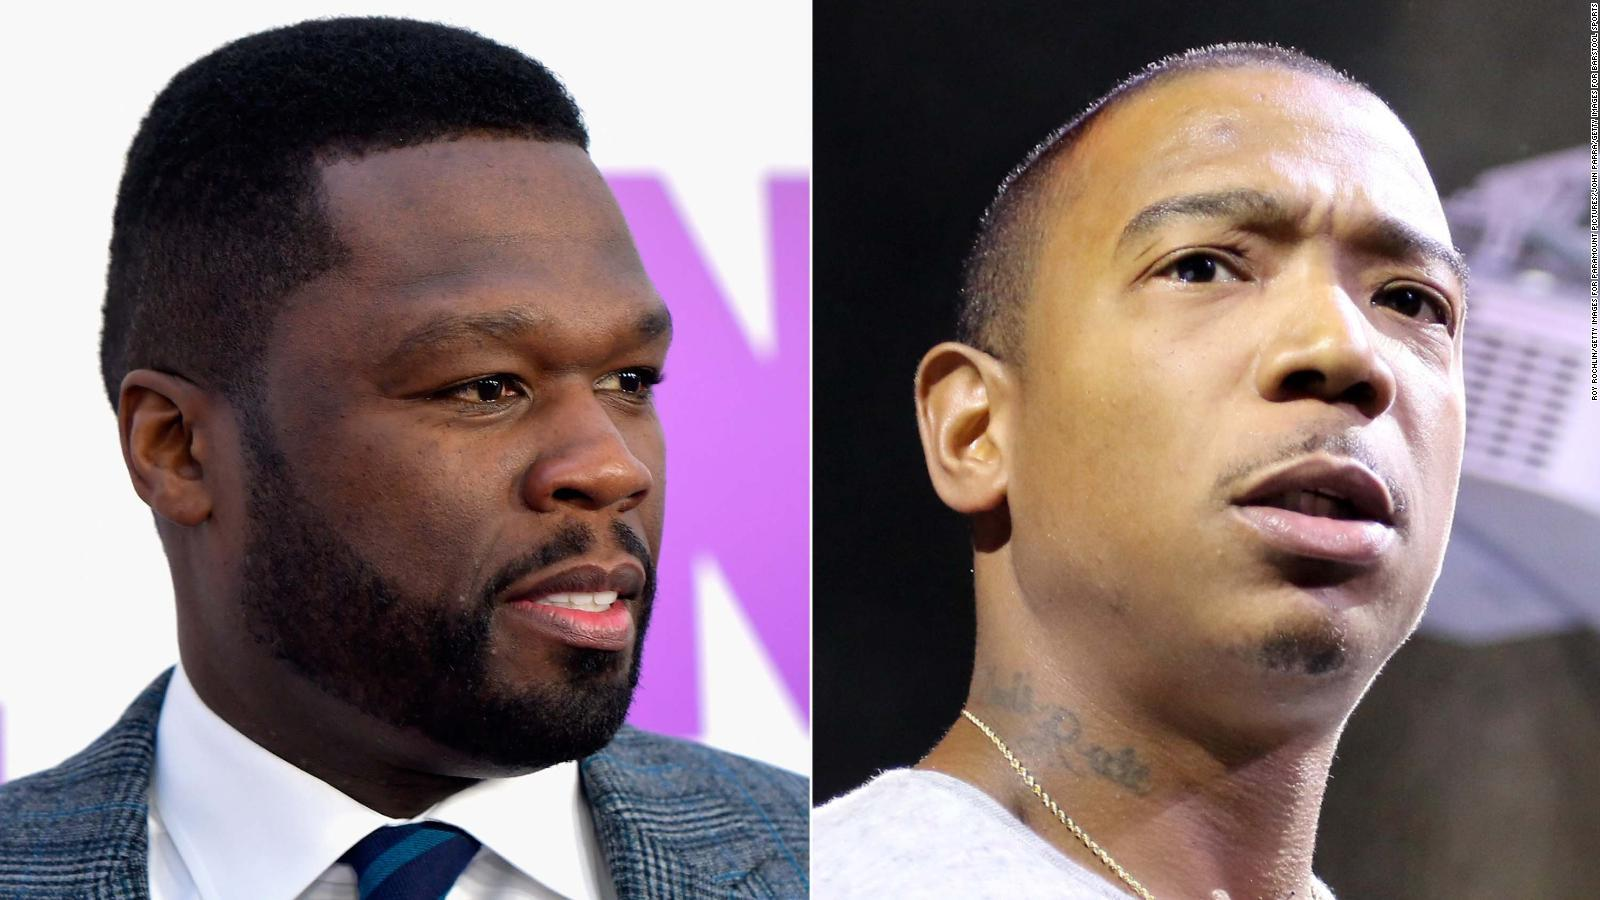 Ja Rule Slams 'Clown' 50 Cent For Being A 'Bad Father' - Says He Also Looks Like His 'Breath Stinks!'